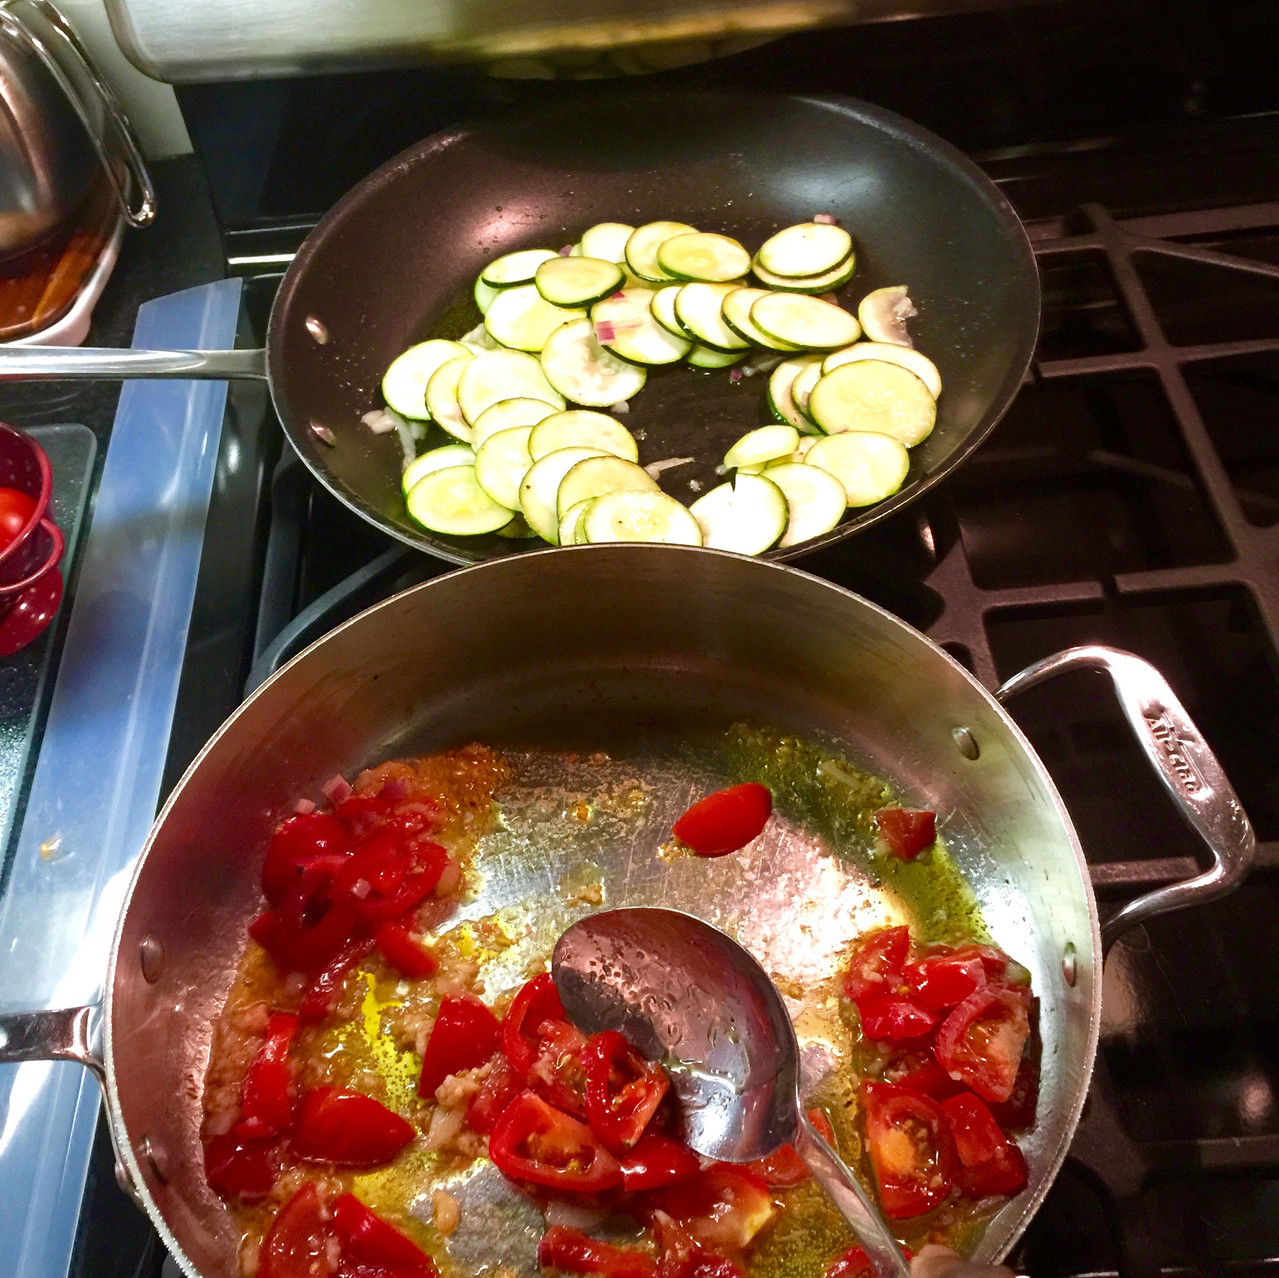 Cooking tomato and zucchini dish